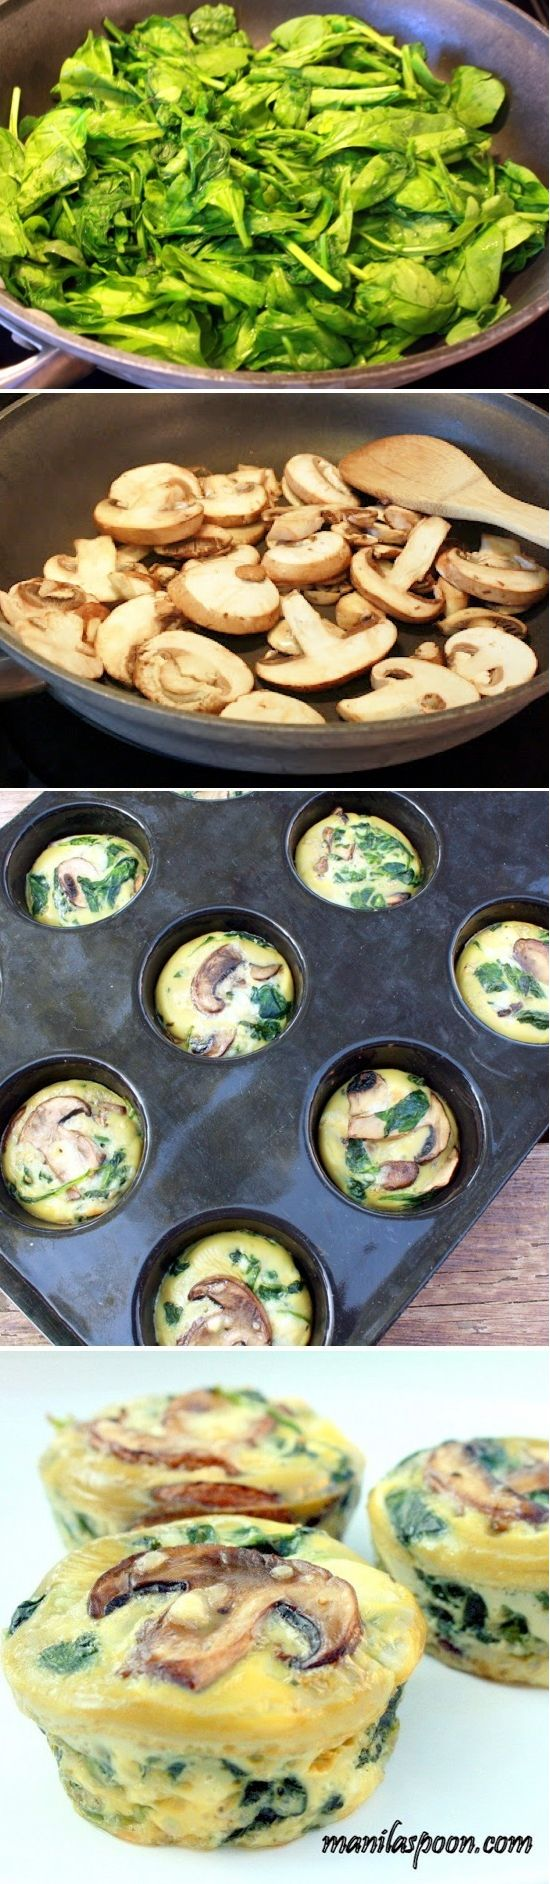 Healthy Savory Spinach Mushroom Egg Cupcakes - Cupcakepedia